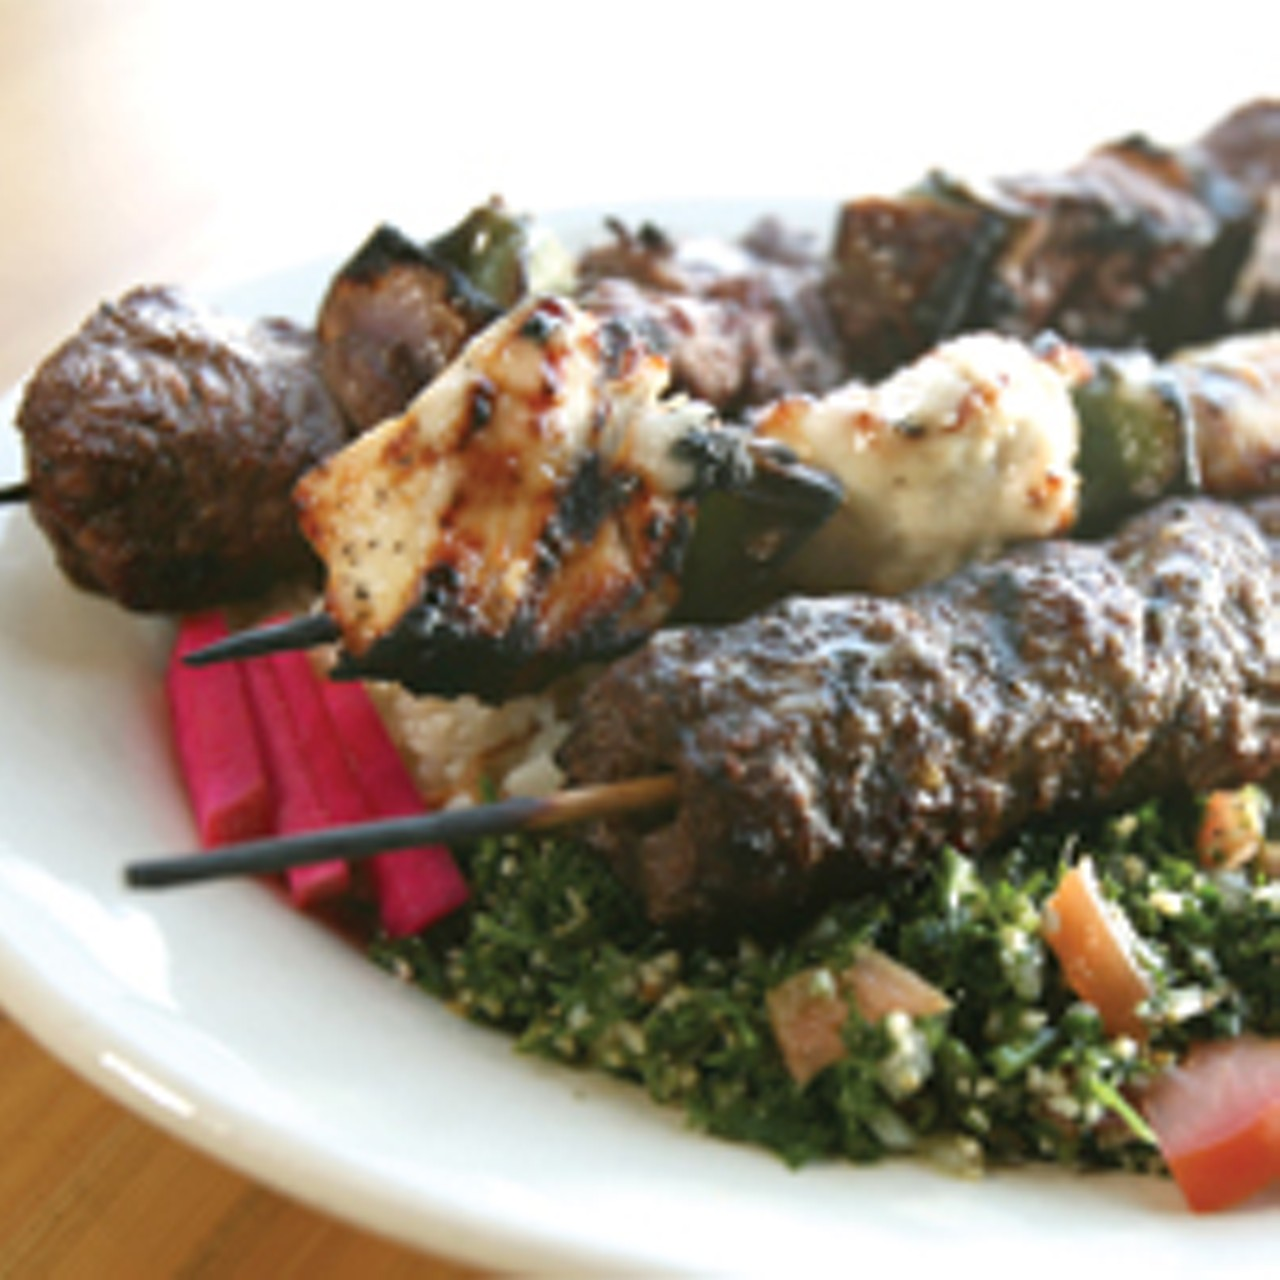 anitas kitchen greater ferndale area middle east salads restaurant - Anitas Kitchen